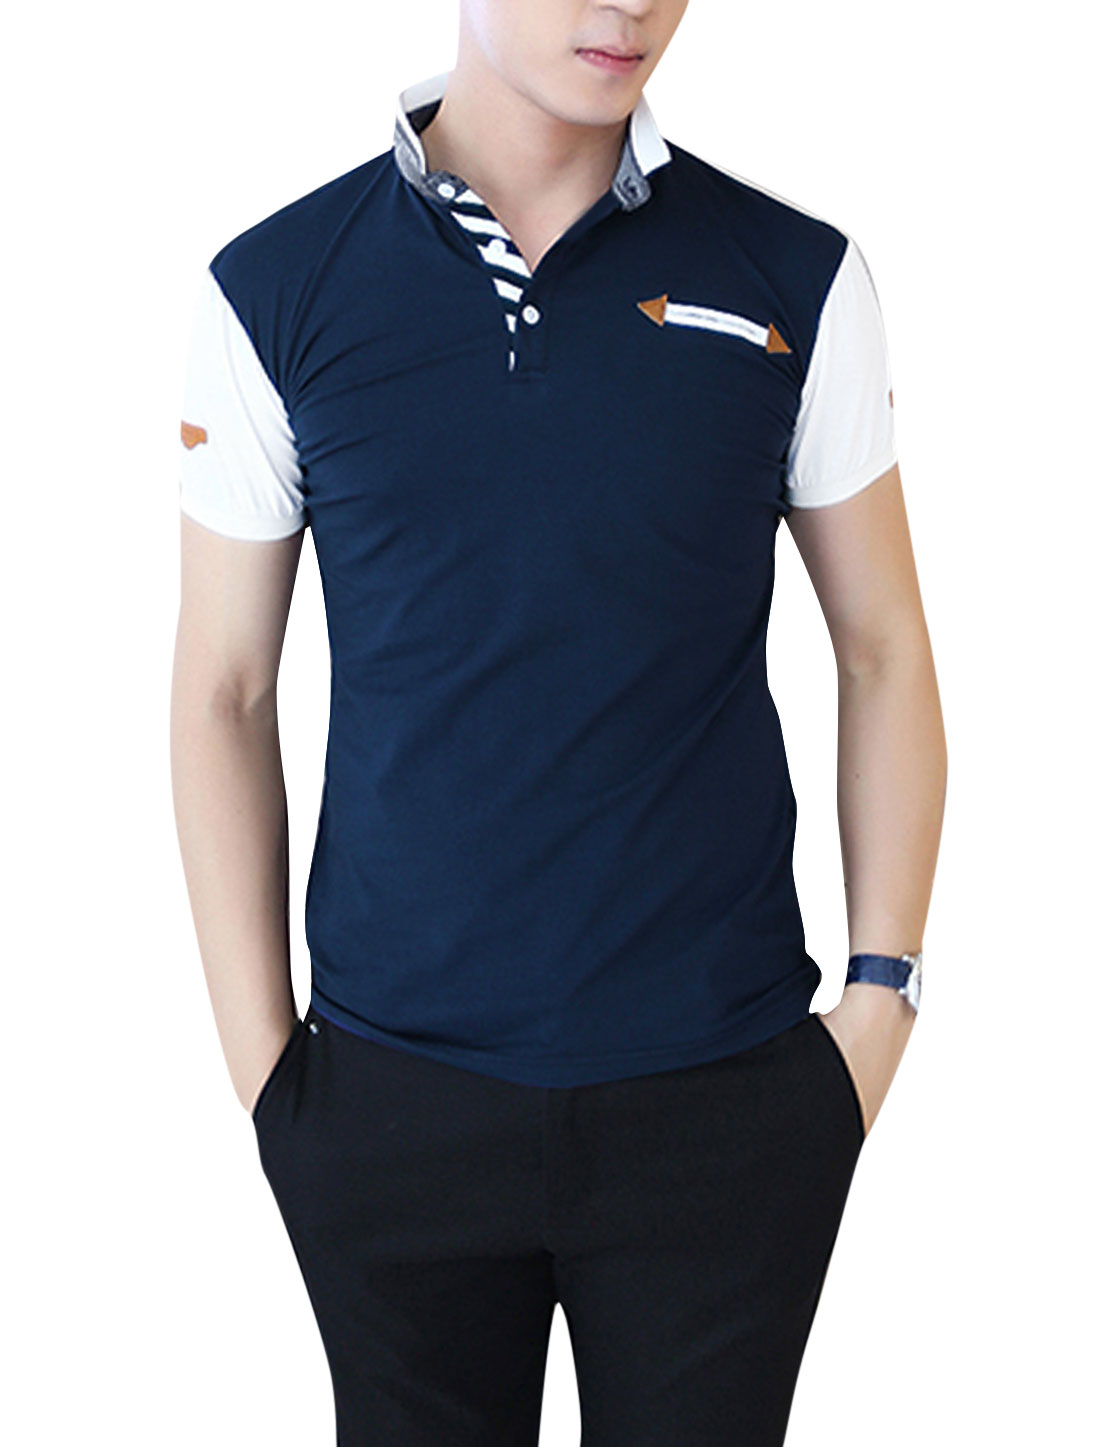 Men Imitation Leather Spliced Detail Polo Shirt Dark Blue M